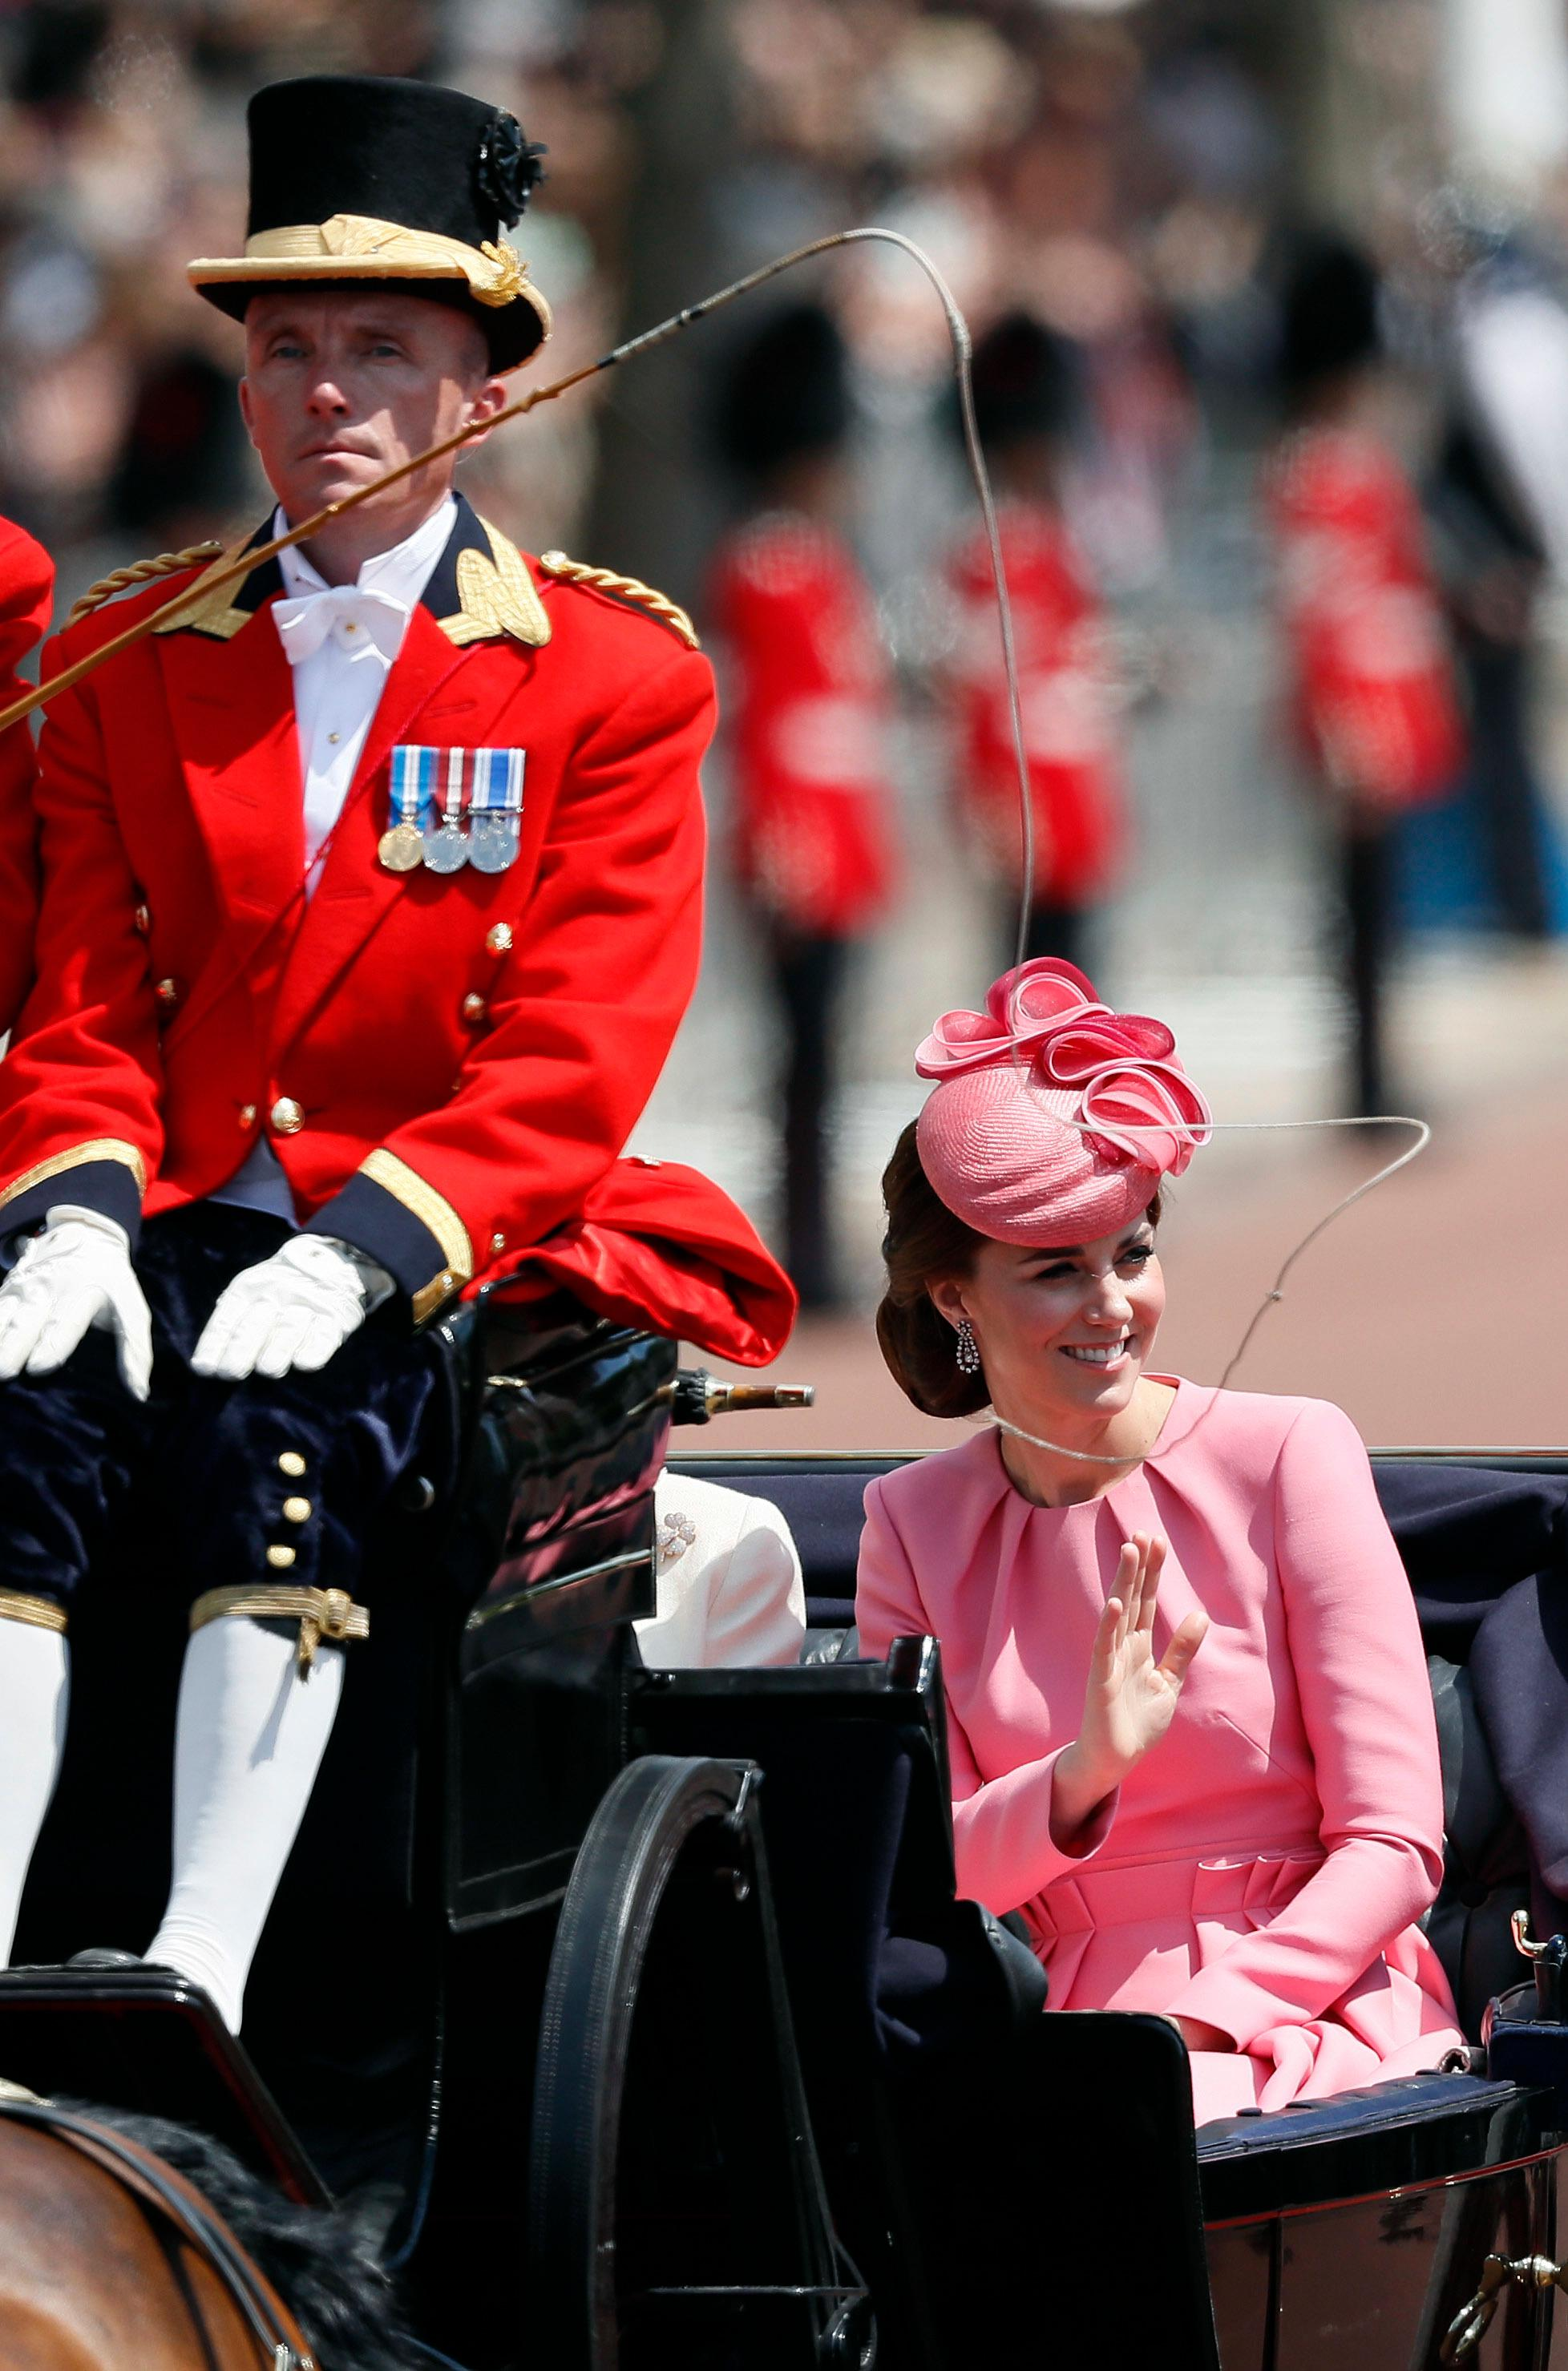 Britain's Kate, the Duchess of Cambridge returns to Buckingham Palace, after attending the annual Trooping the Colour Ceremony in London, Saturday, June 17, 2017. (AP Photo/Kirsty Wigglesworth)